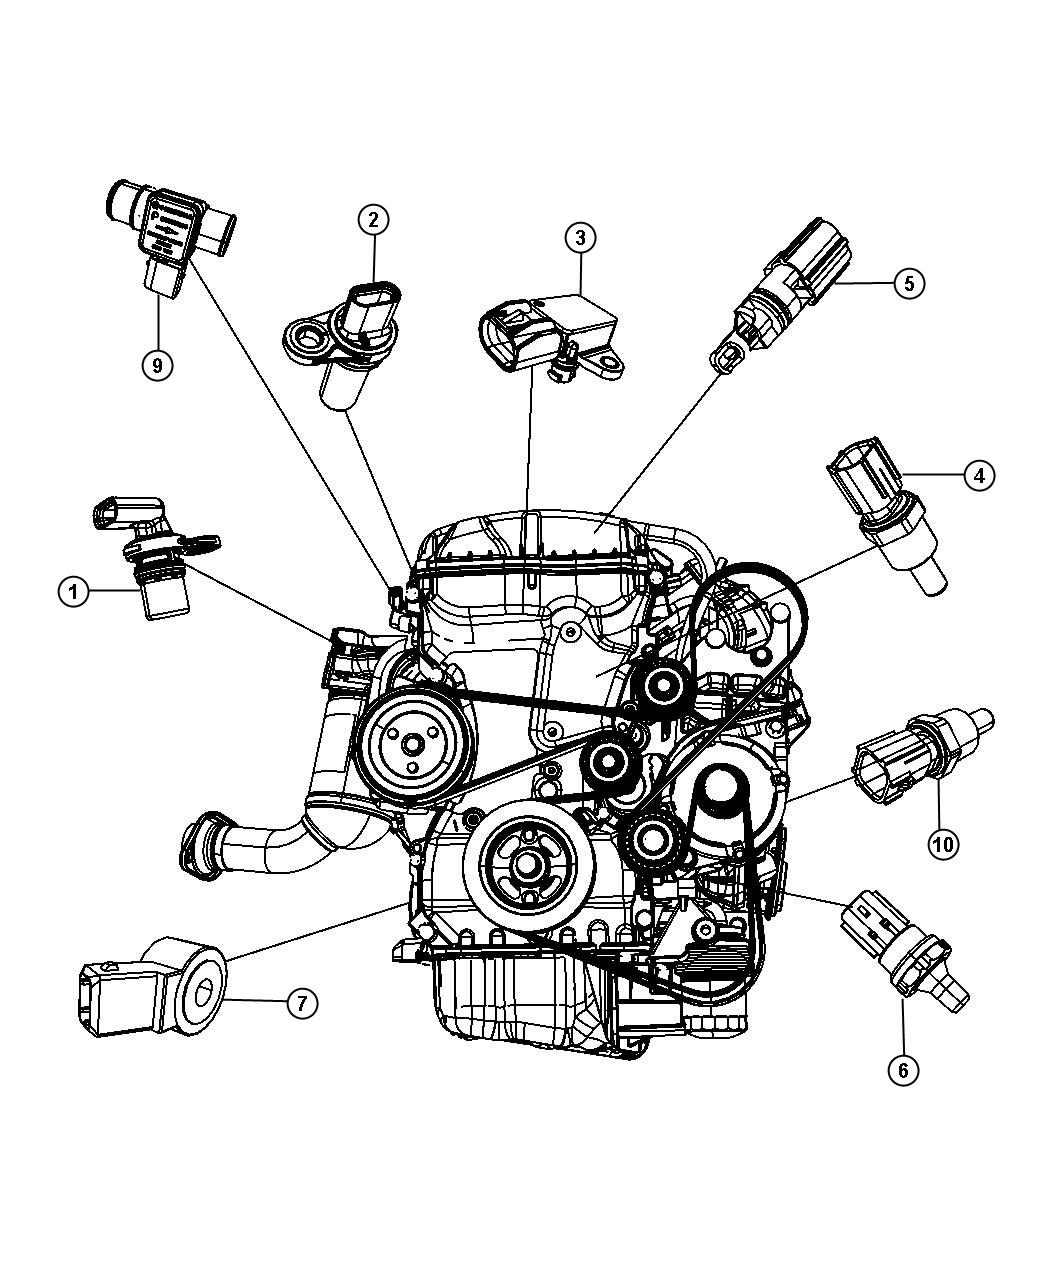 Dodge Avenger 2 4 Litre Engine Diagram on 1997 chrysler new yorker